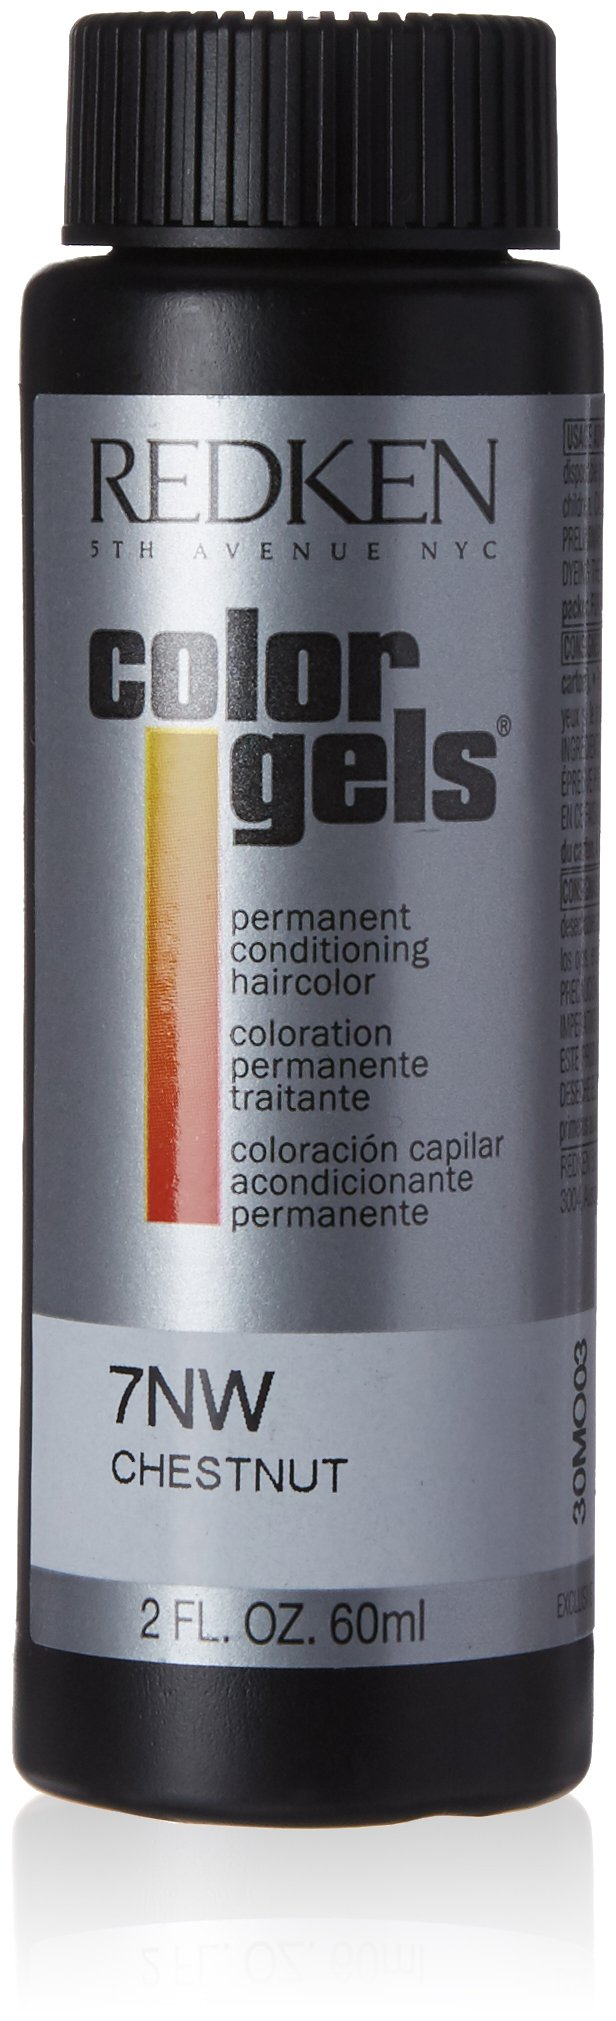 Amazon Redken Color Gels Permanent Conditioning 7n Bamboo Hair